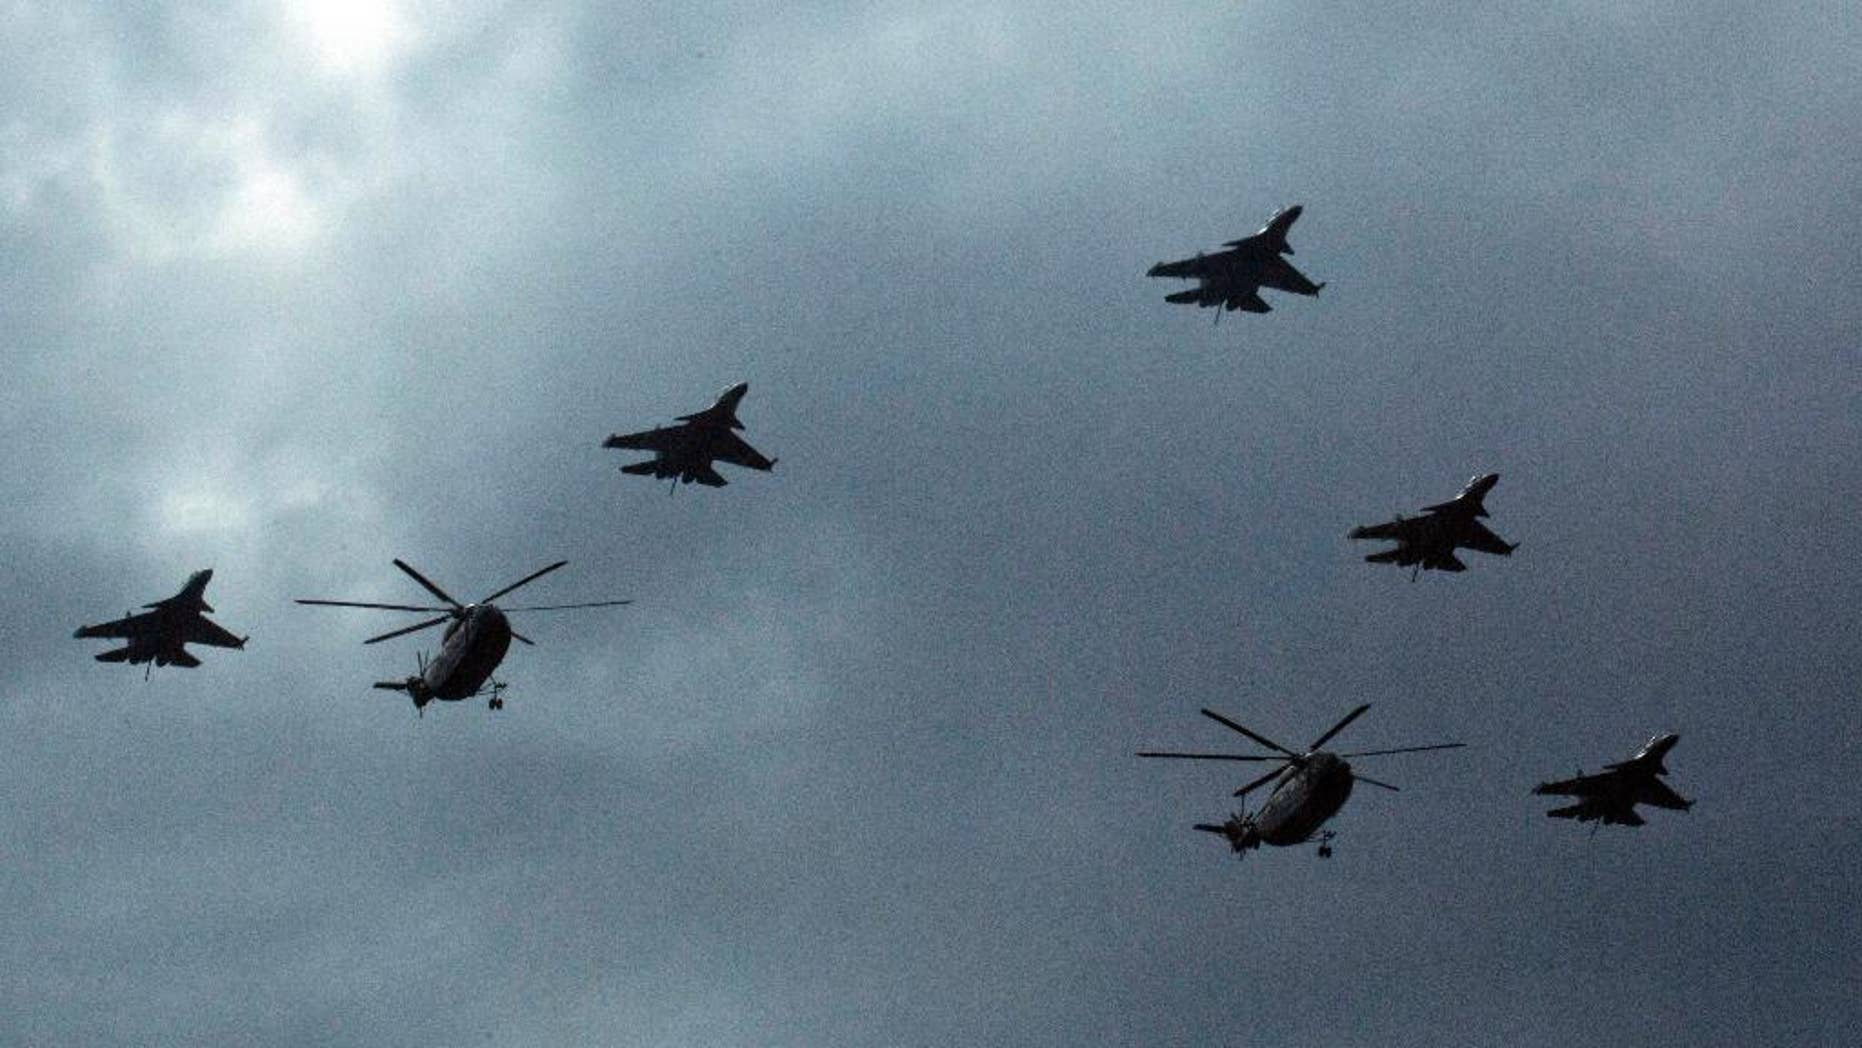 Chinese military helicopters and fighter jets take part in rehearsals ahead of the Sept. 3 military parade to commemorate the end of World War II in Beijing, Sunday, Aug. 23, 2015. China is ramping up publicity for its upcoming massive military parade but officials still aren't saying what other countries are taking part. (AP Photo/Ng Han Guan)